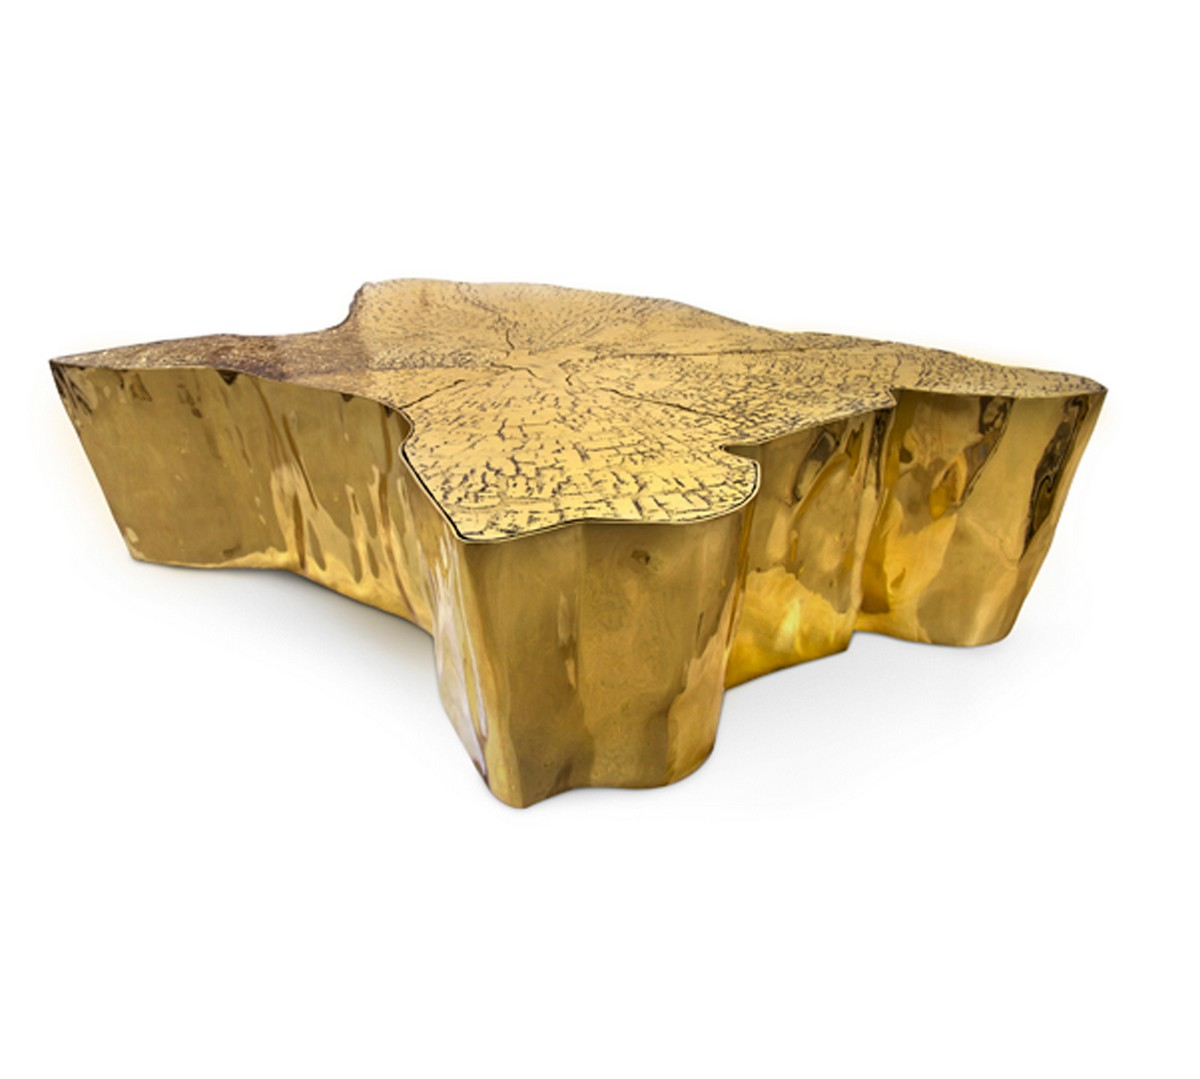 Top Luxury Coffee Tables (Part II) luxury coffee tables Top Luxury Coffee Tables (Part II) eden 1